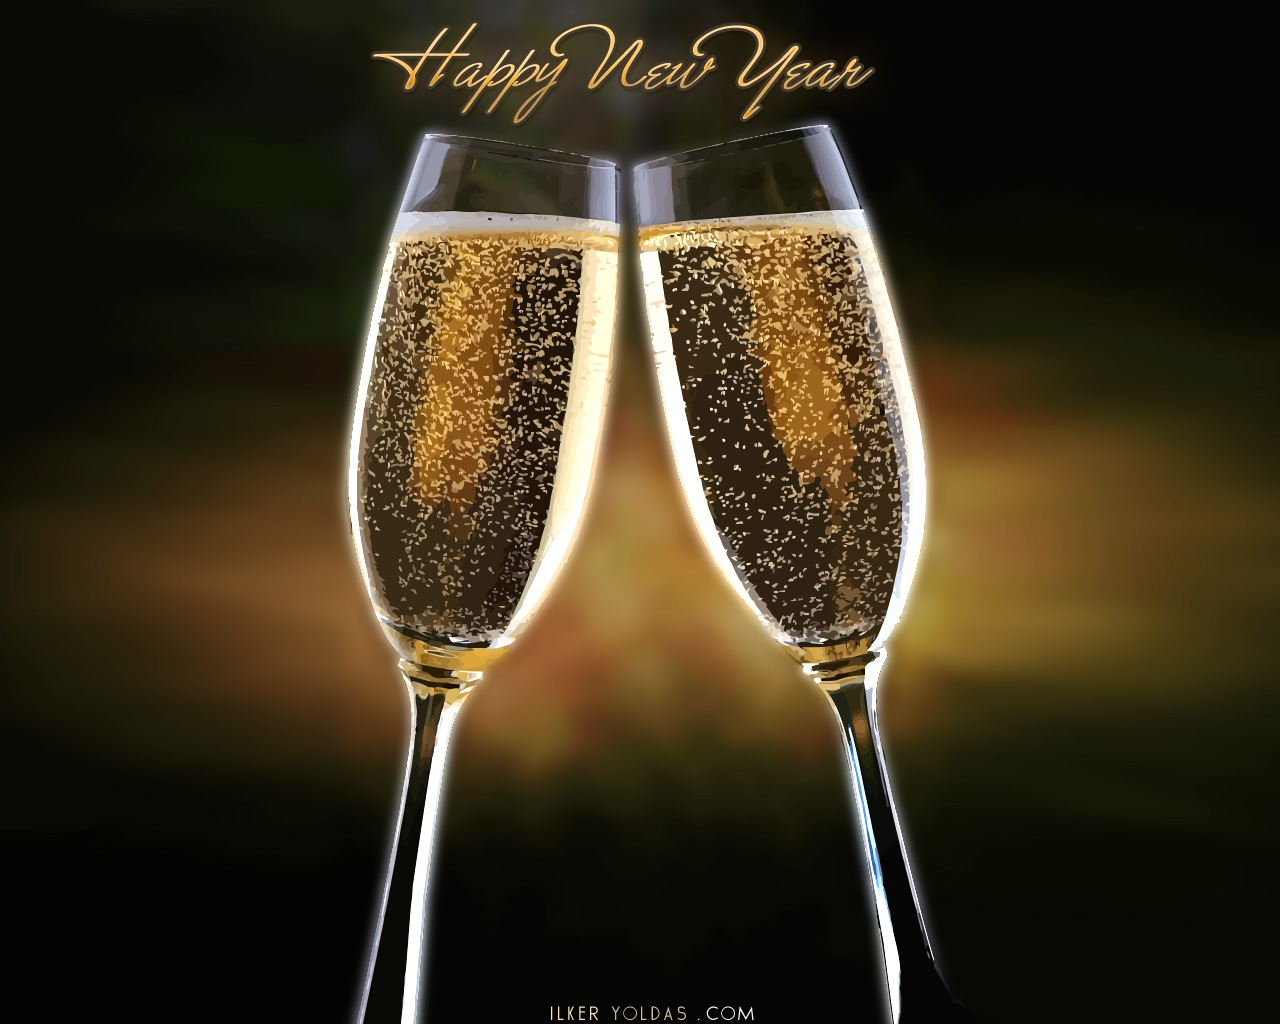 http://2.bp.blogspot.com/_-Dqntok-aHM/TR2kcO9Z9LI/AAAAAAAAFPI/FUfvzGs2jJI/s1600/20091231-happy-new-year-wallpaper.jpg